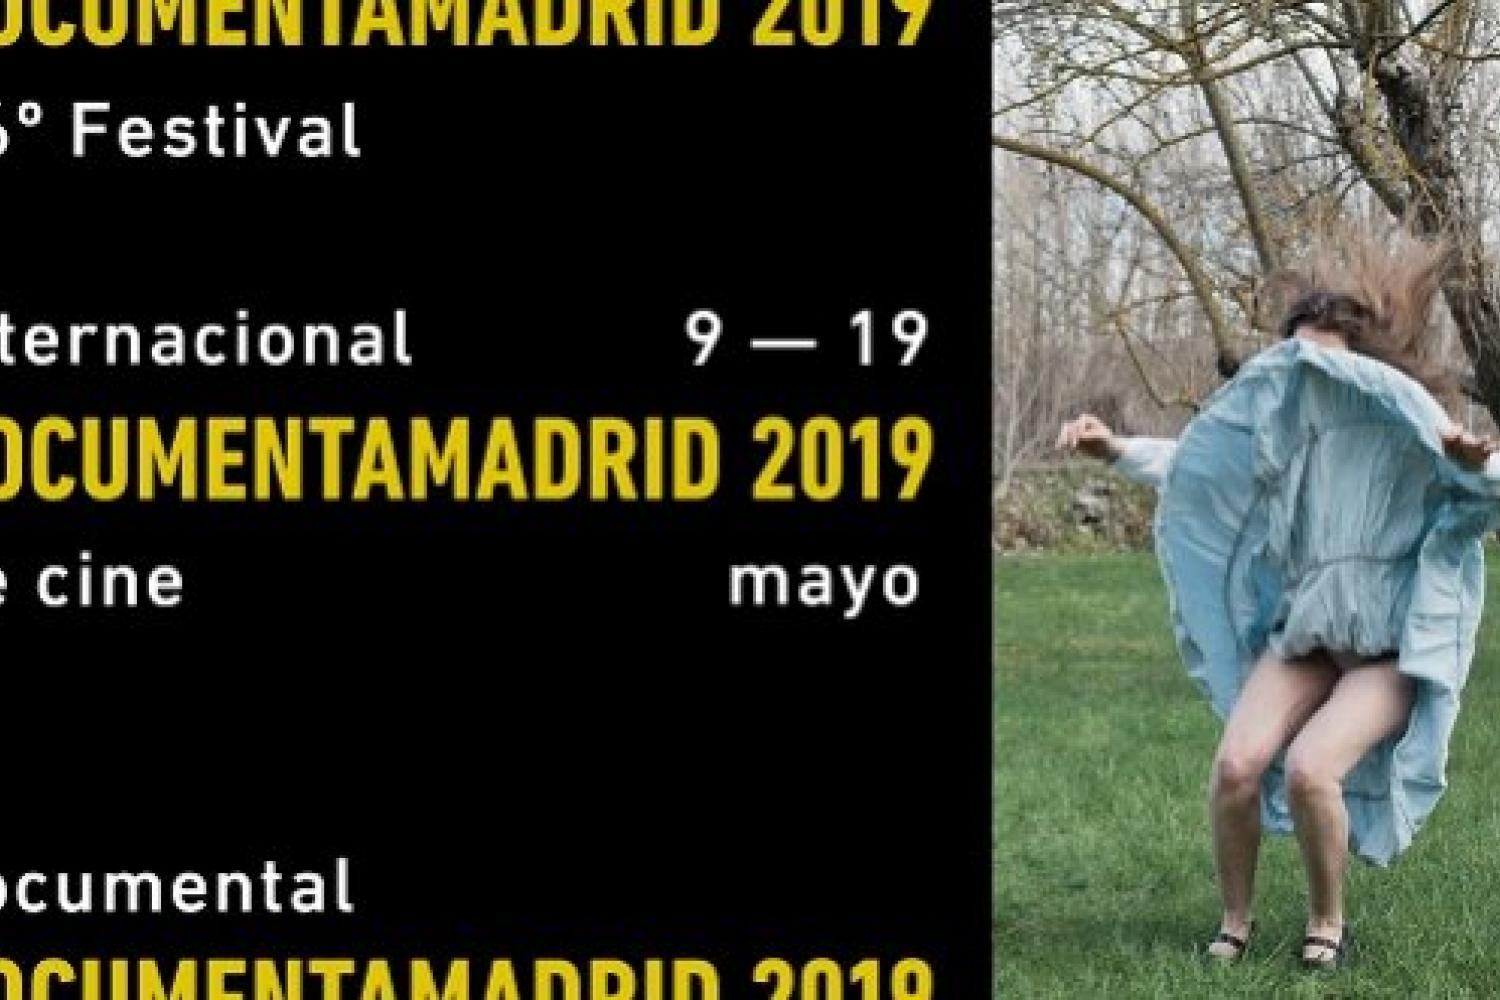 DOCUMENTA MADRID 2019